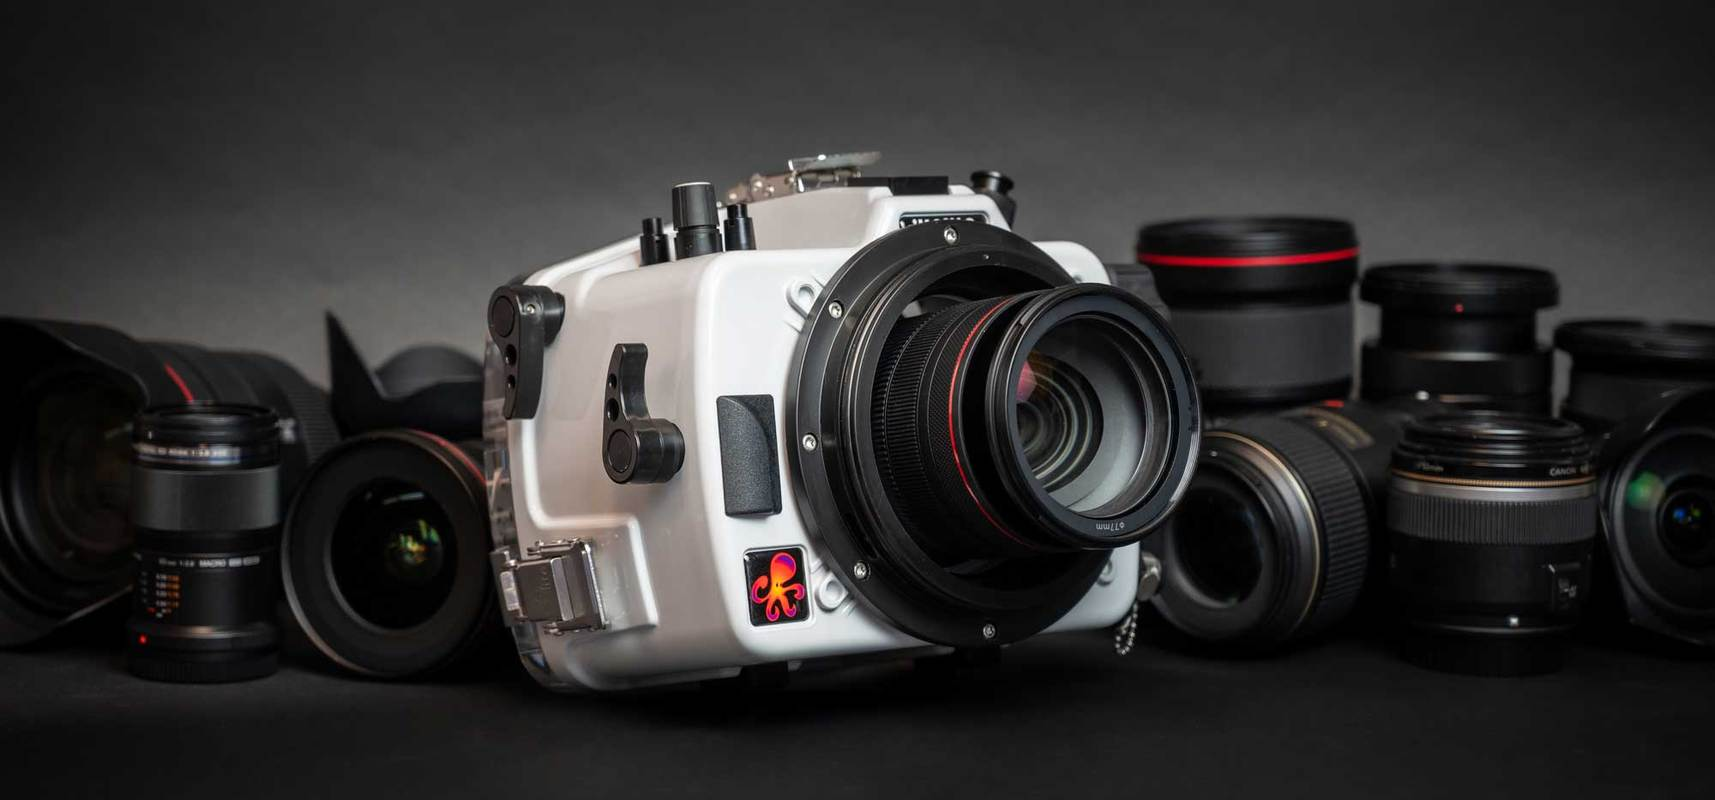 Canon Rebel SL2 Housing & Camera